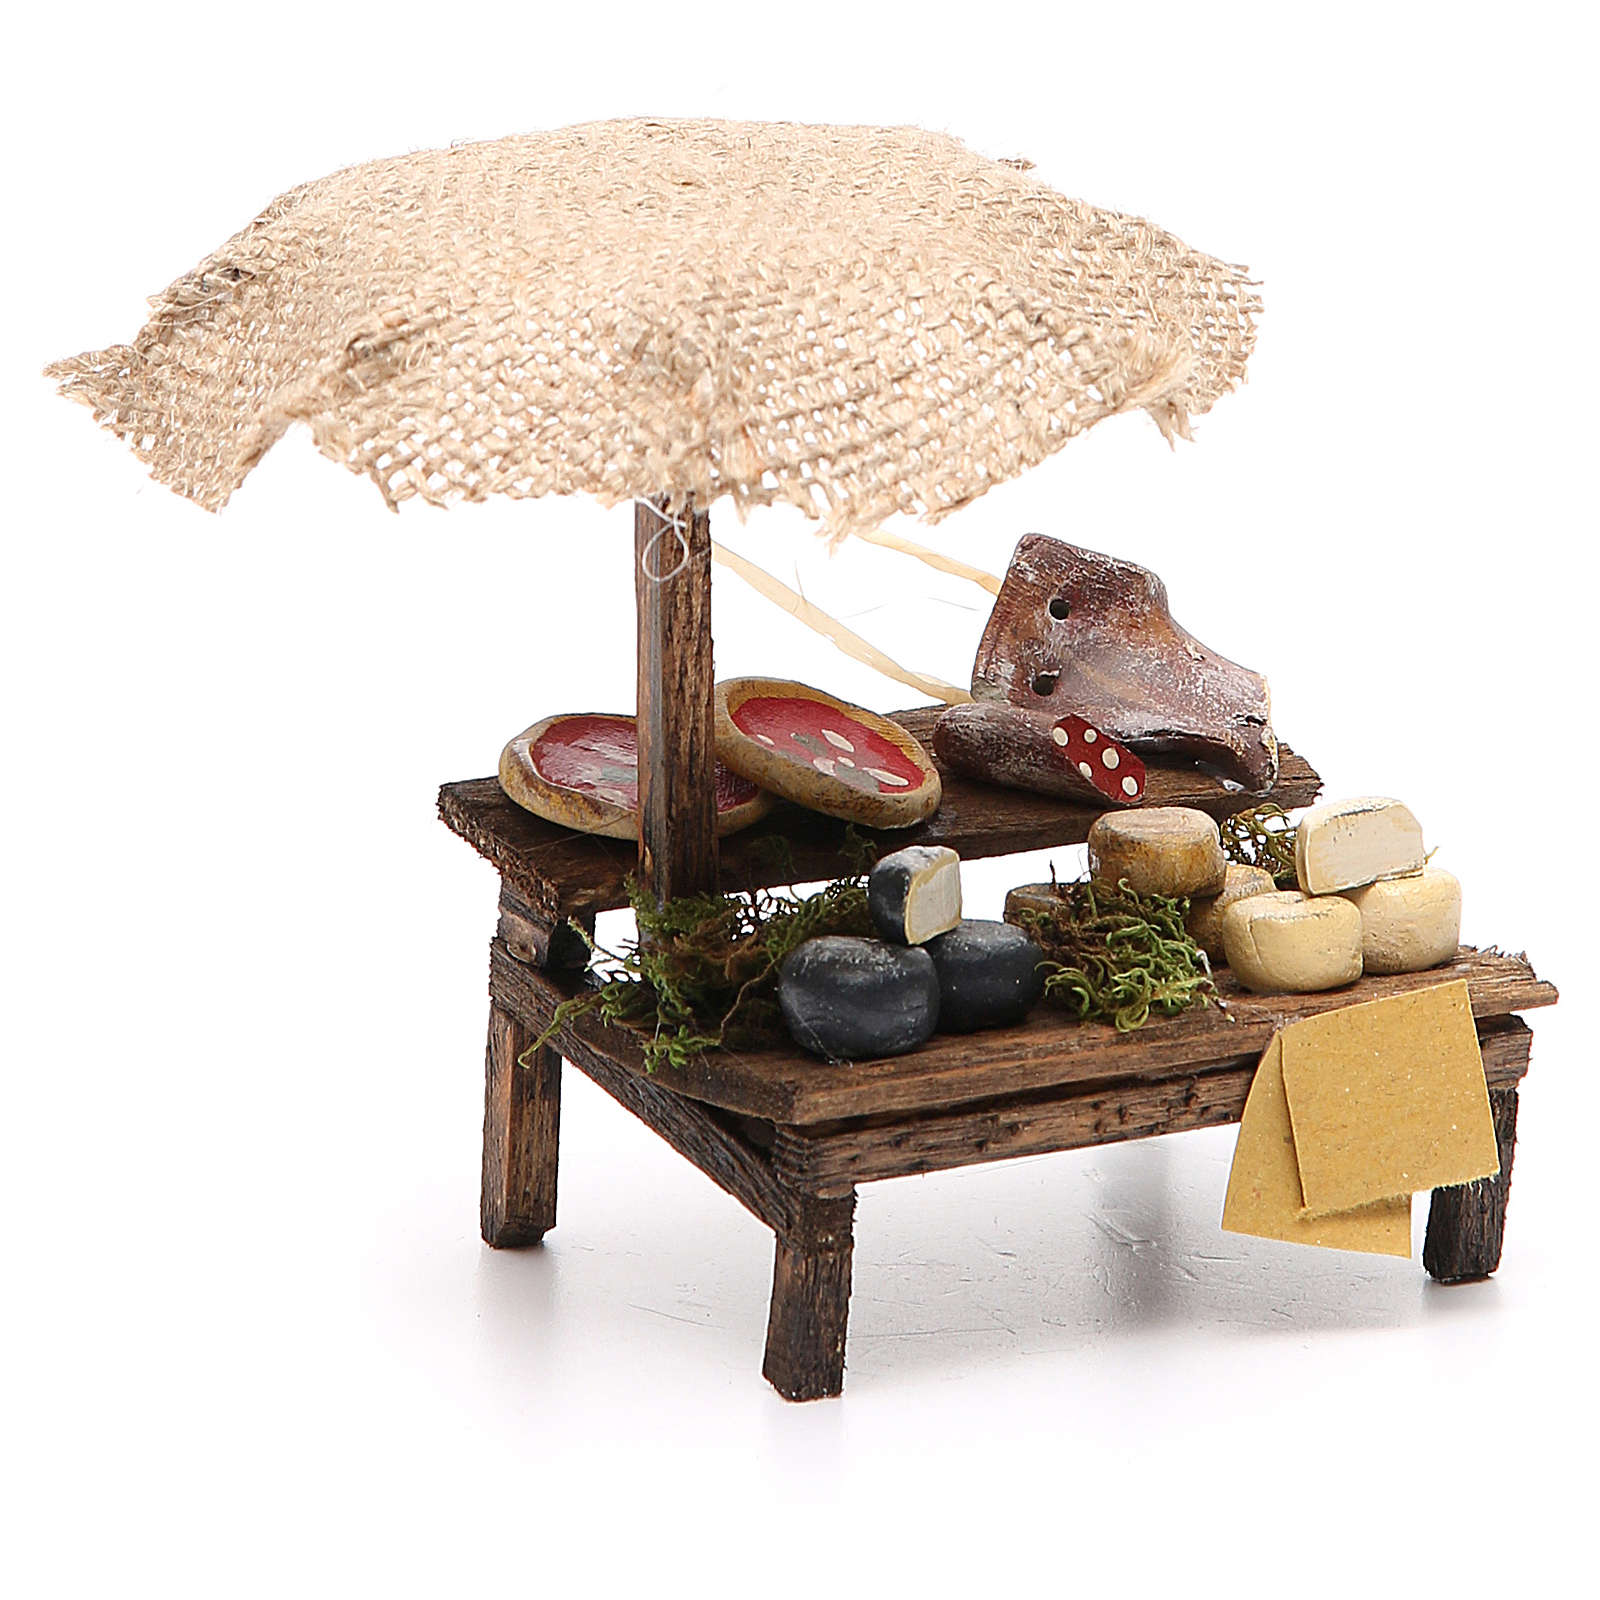 Workshop nativity with beach umbrella, pizza and cheeses 12x10x12cm 4